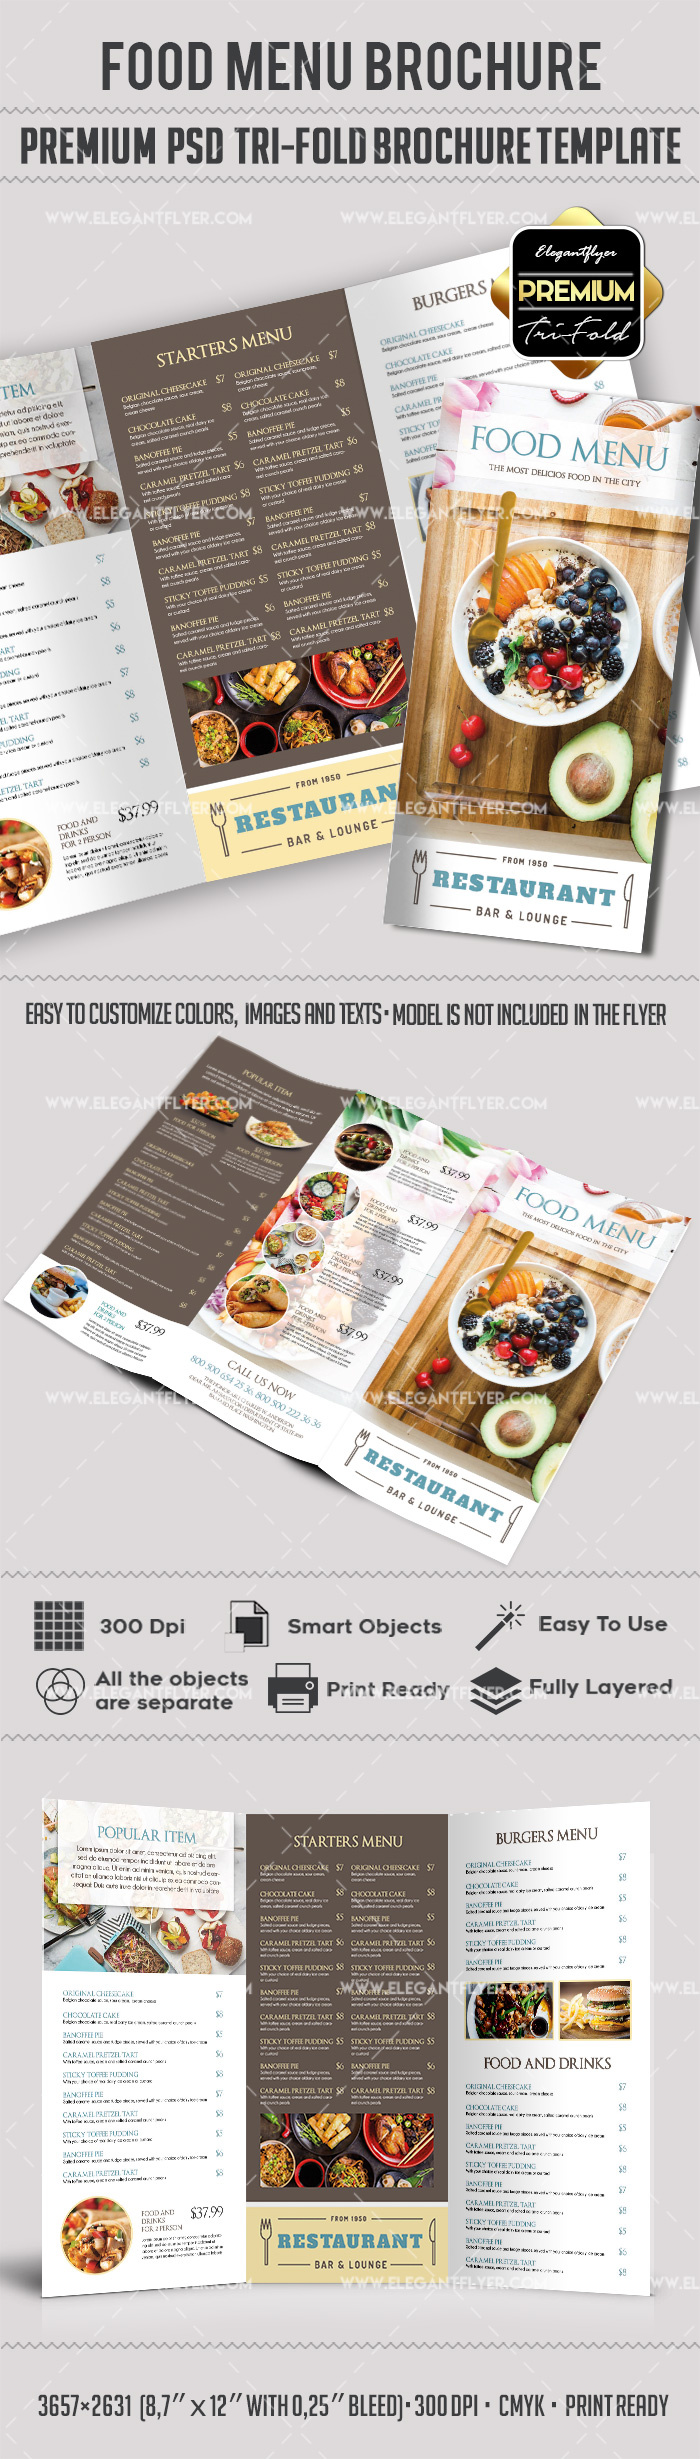 Food Menu – Premium Tri-Fold PSD Brochure Template